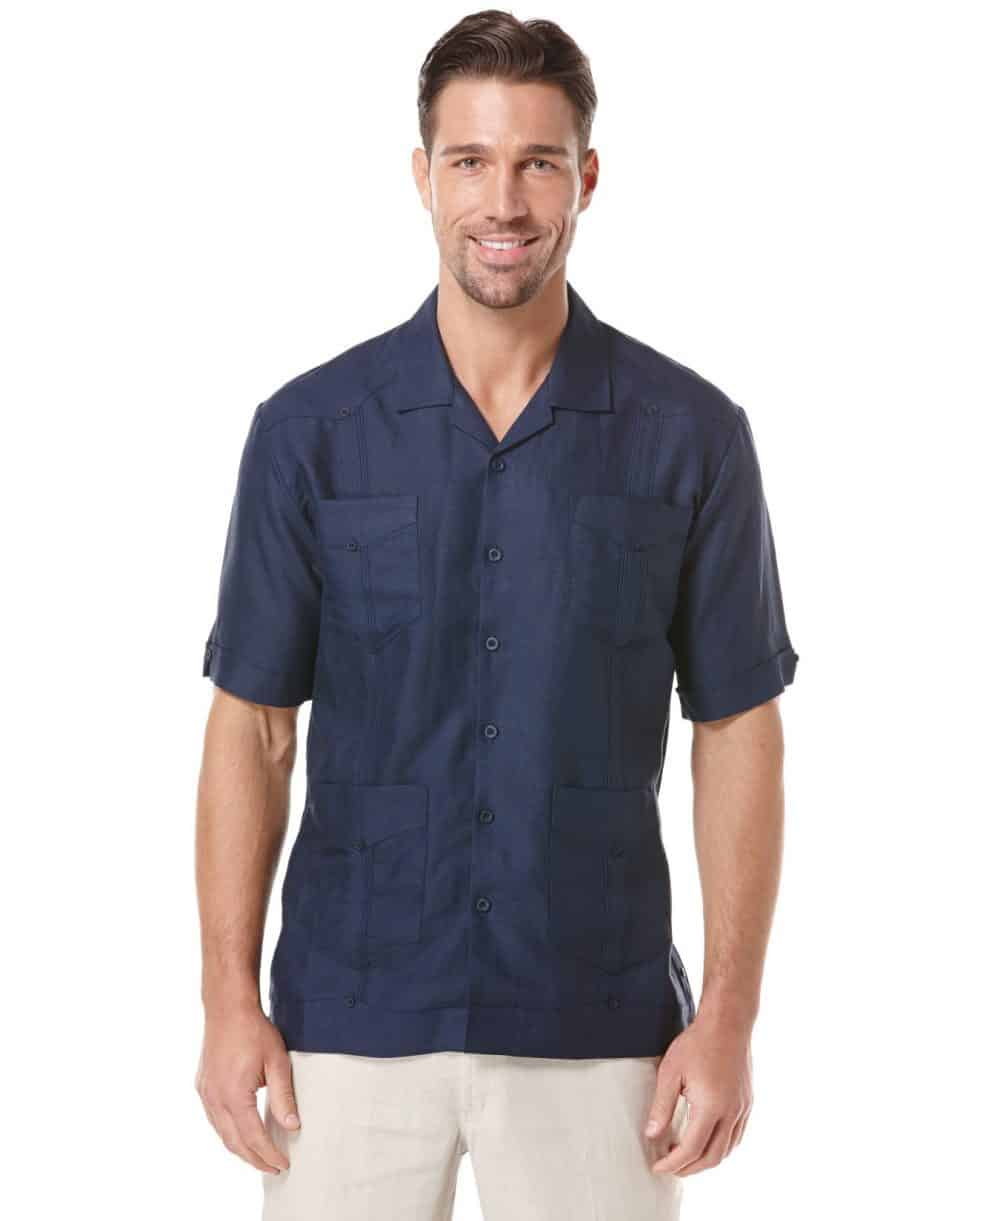 Cubavera Men's Big & Tall Short Sleeve Guayabera (Dress Blues) - Size 4XLT